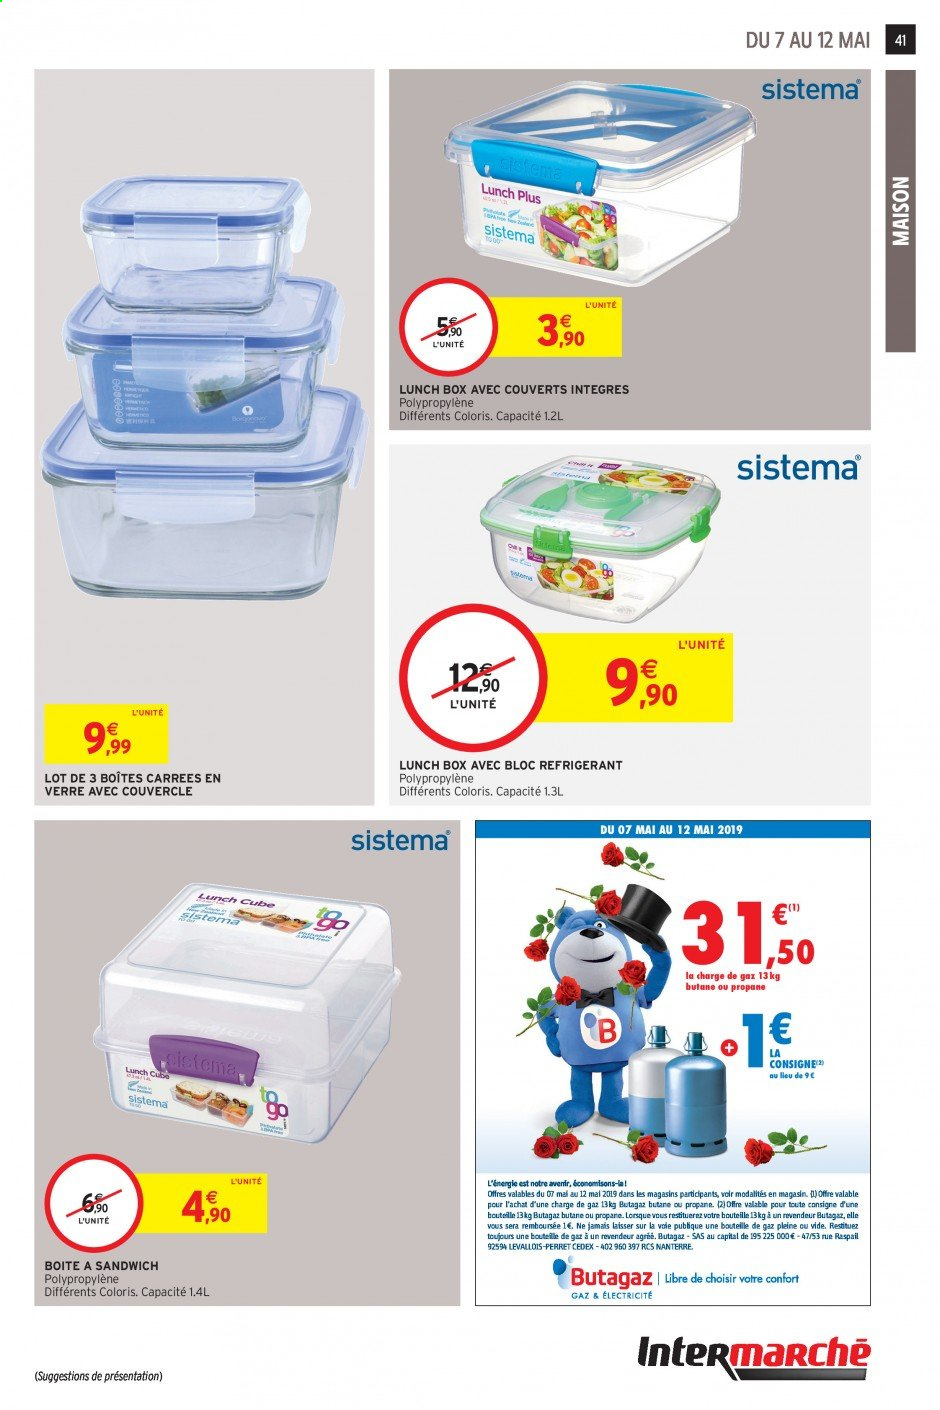 Catalogue Intermarché - 07.05.2019 - 12.05.2019. Page 40.